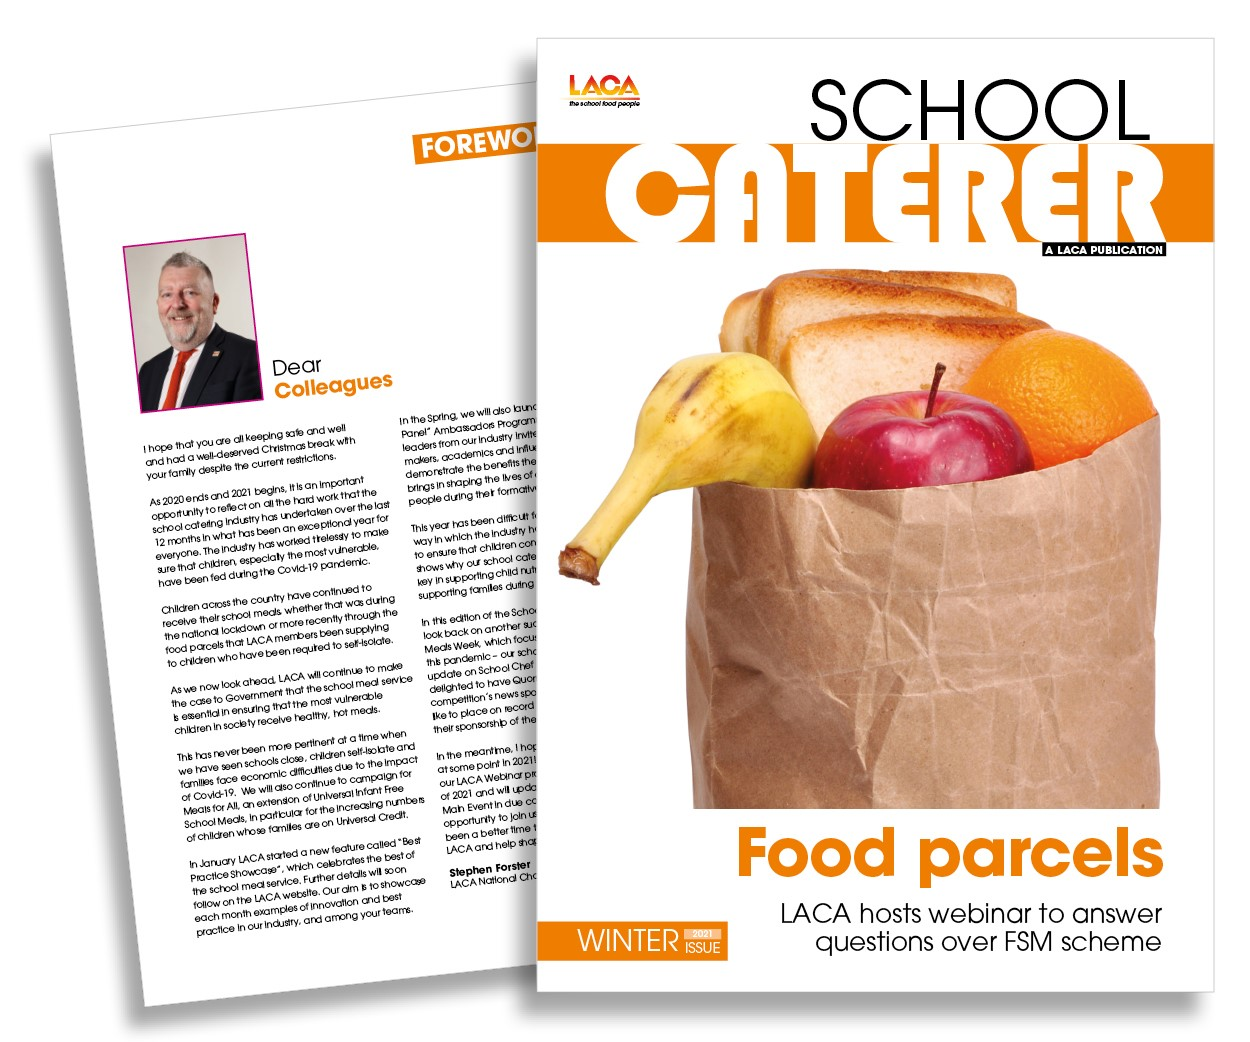 LACA School Caterer Winter